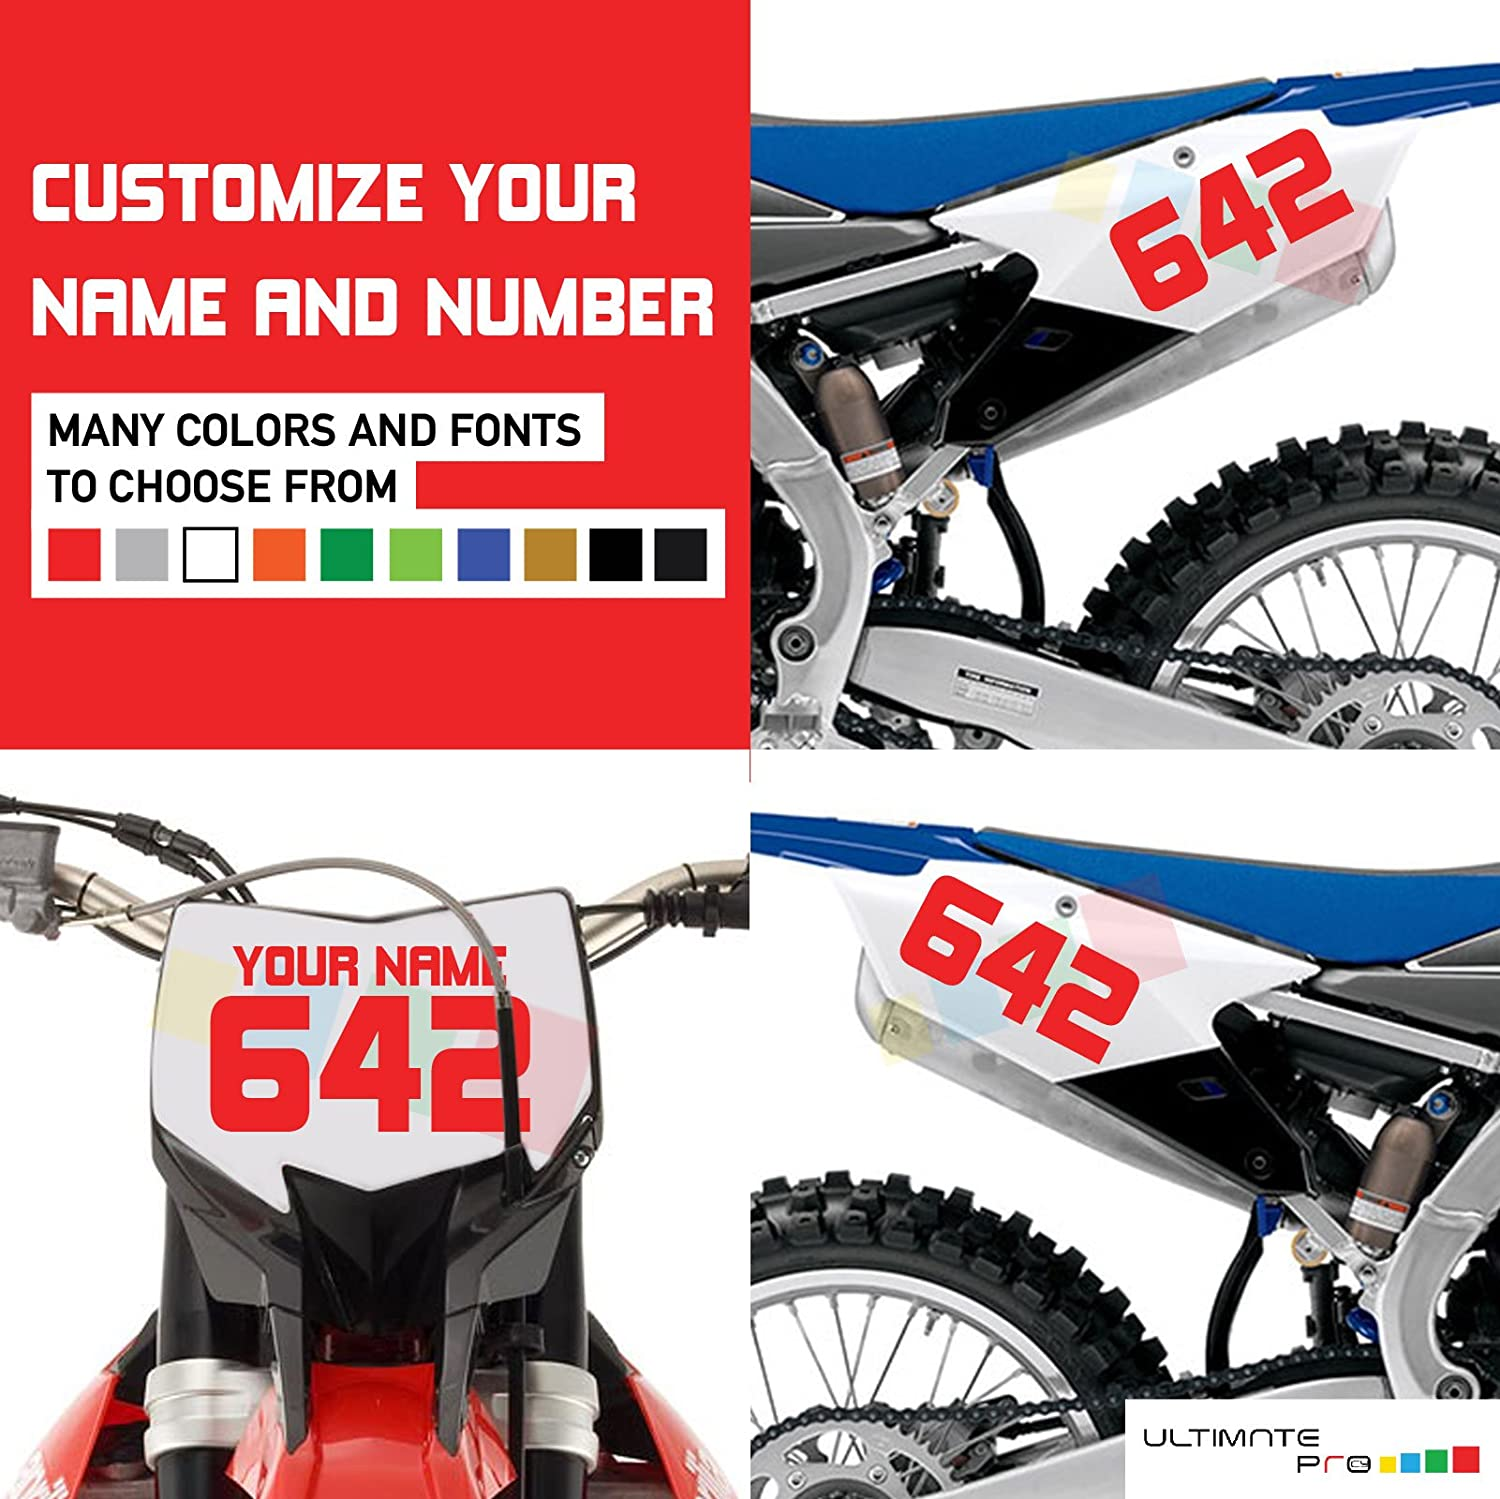 Amazon com 3x custom decal stickers for dirt bike motorcycle automotive